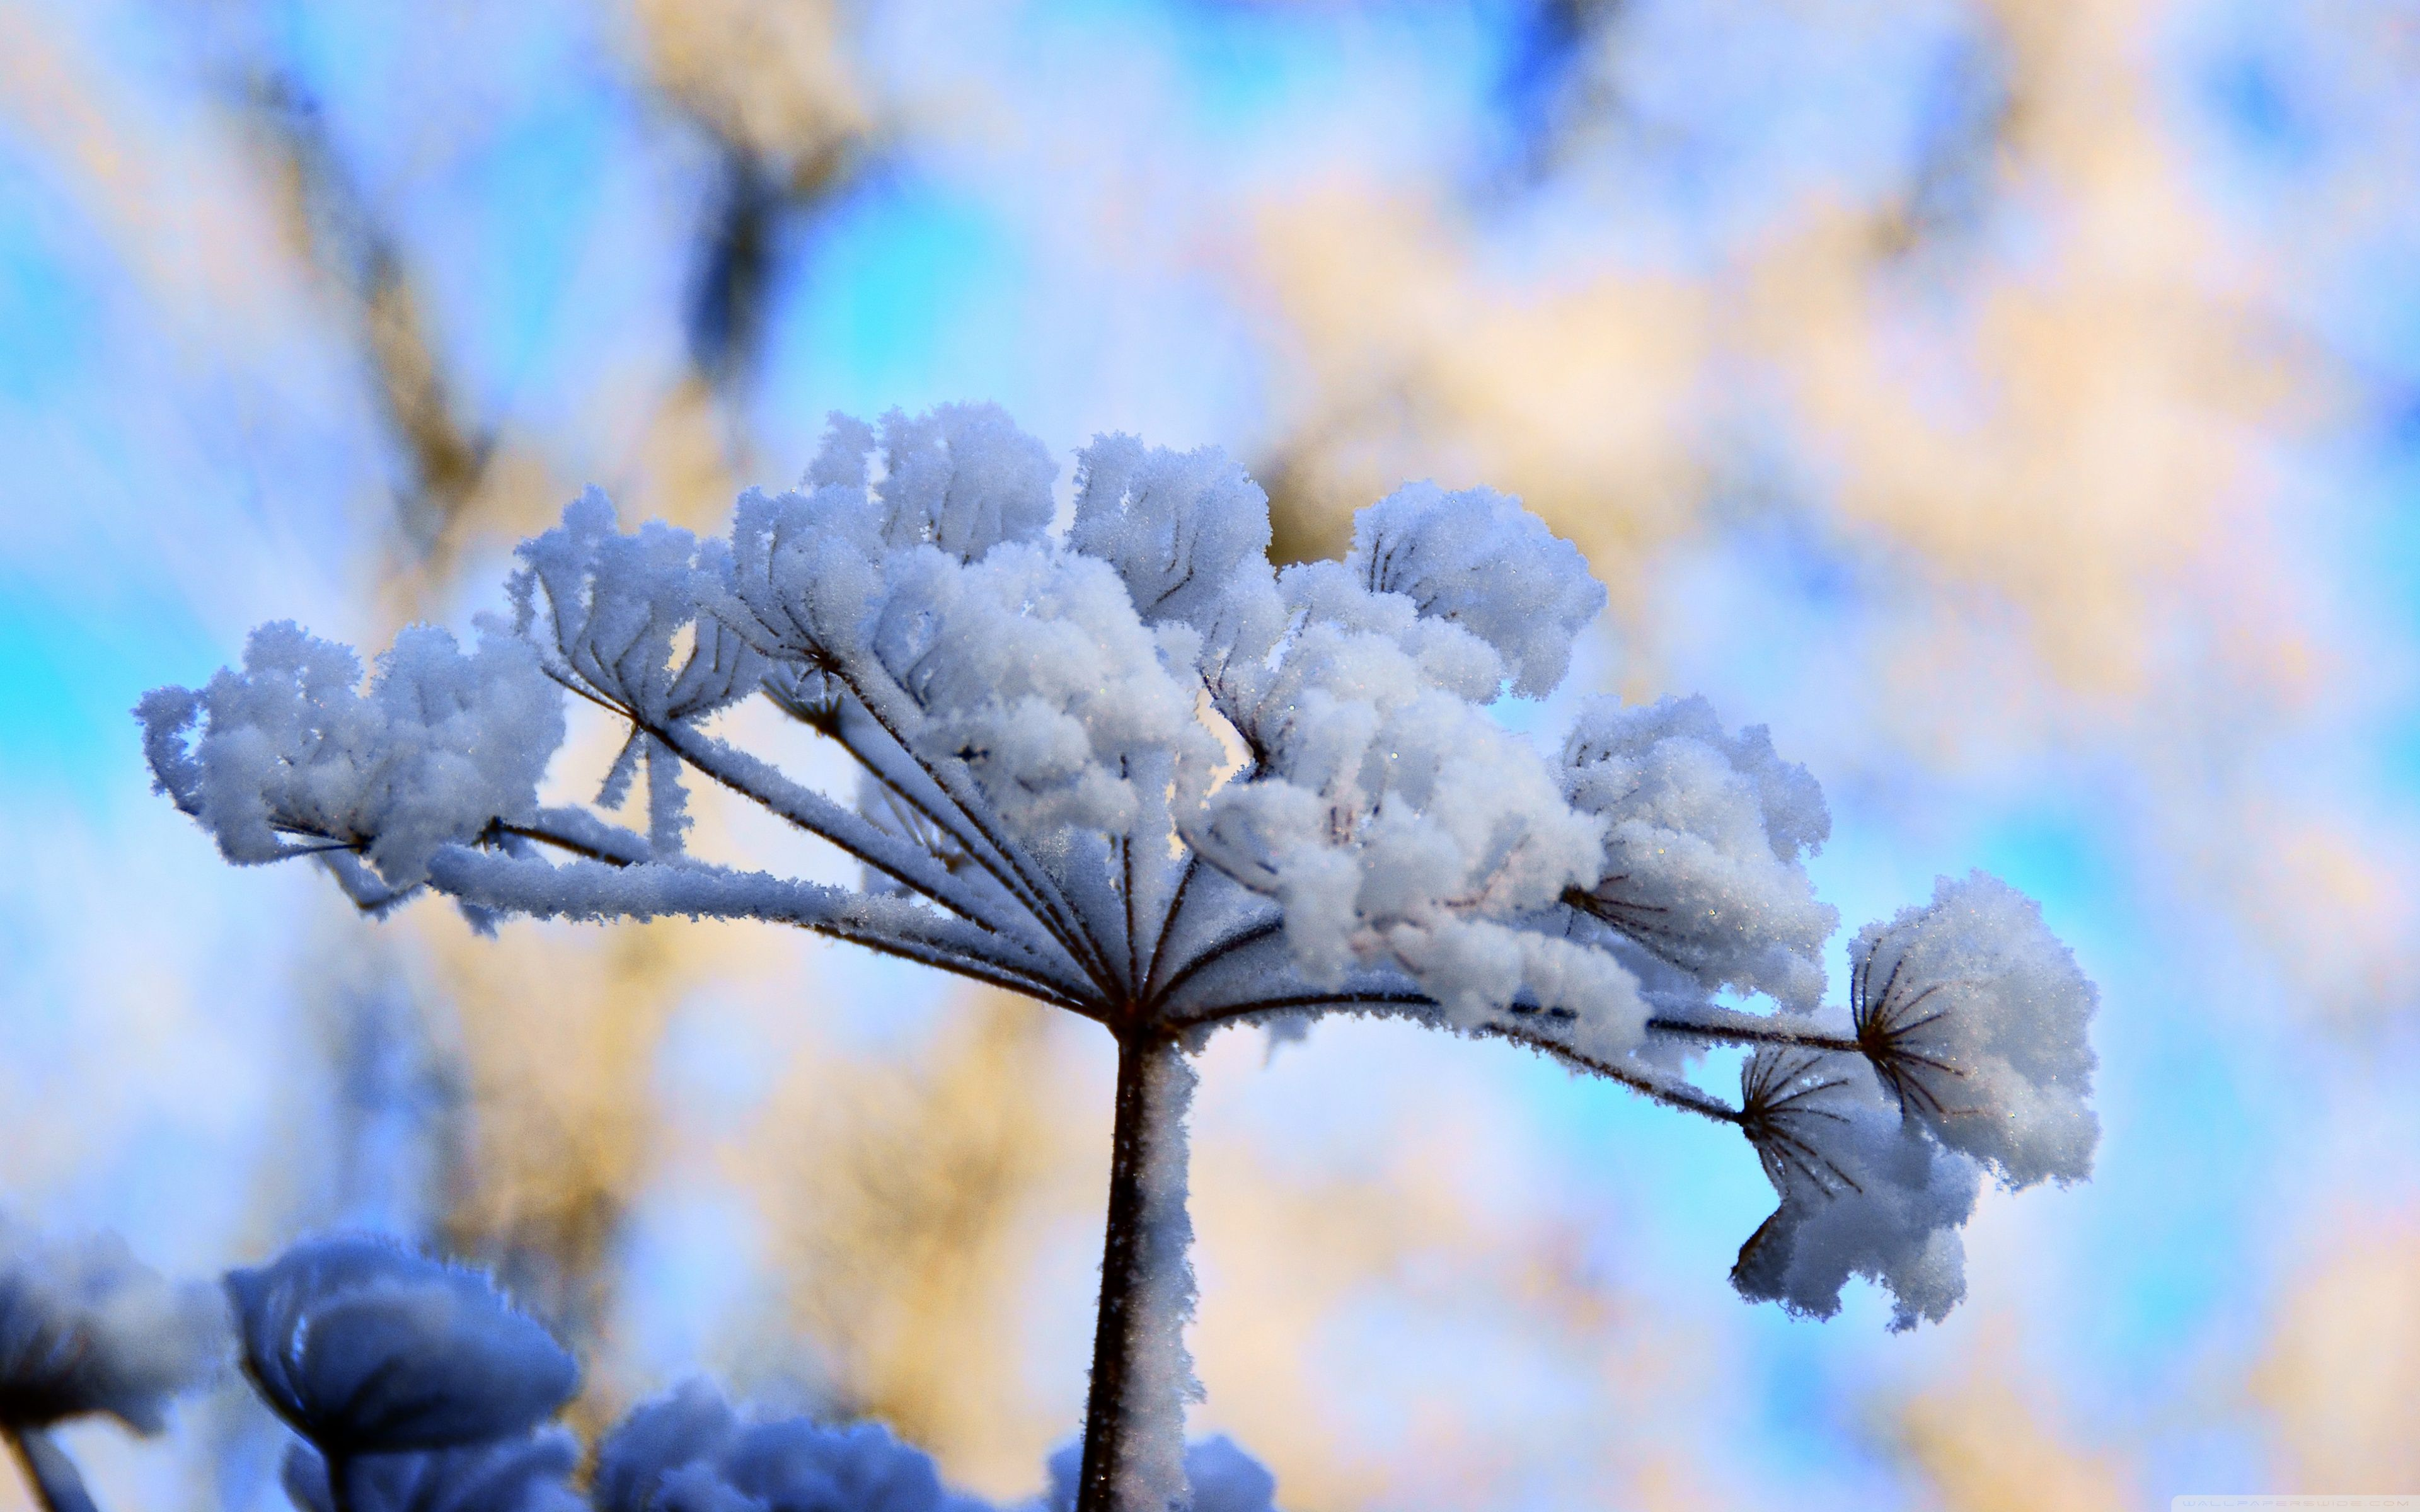 Flowers In Snow Wallpapers Top Free Flowers In Snow Backgrounds Wallpaperaccess